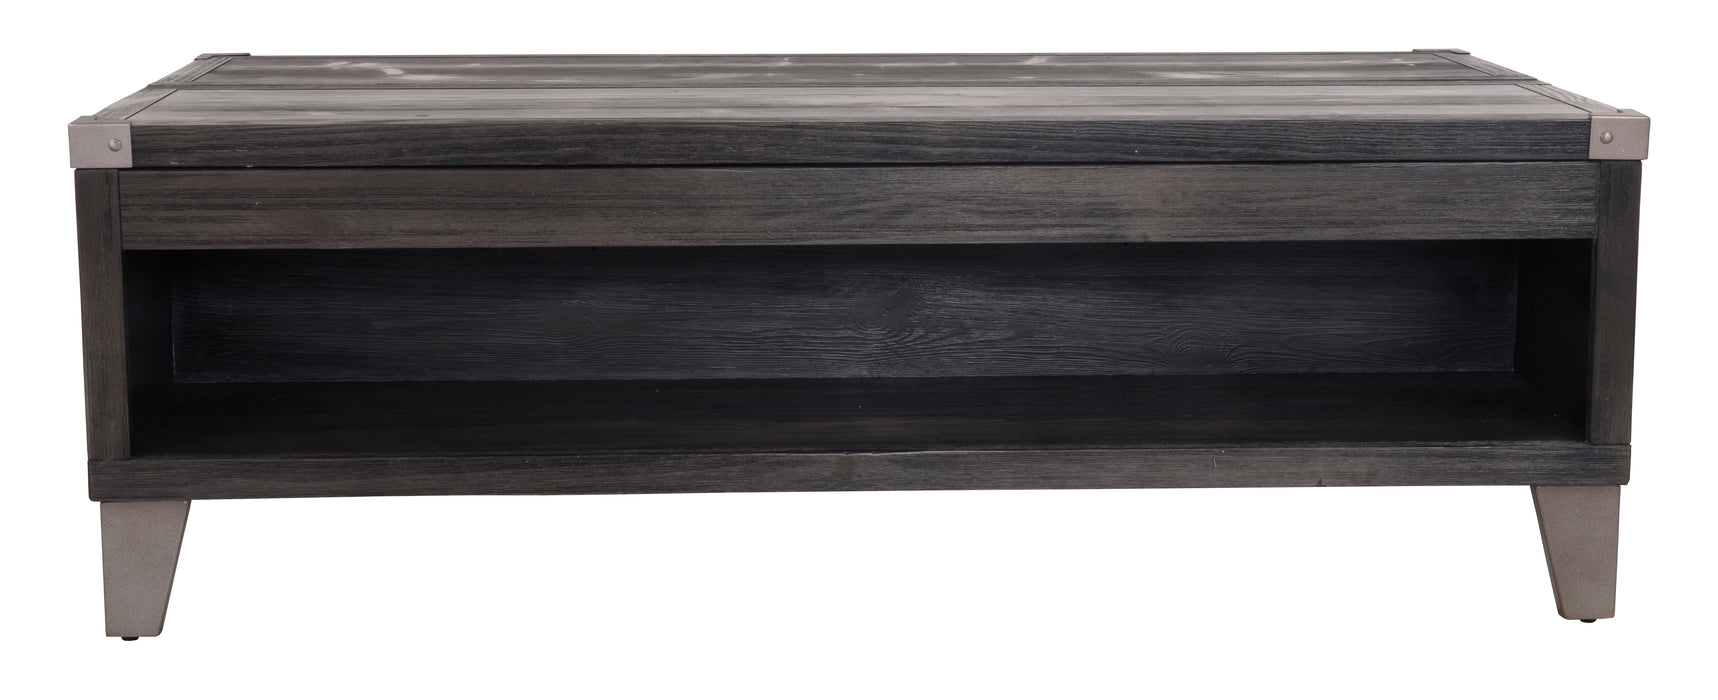 Todoe - Lift Top Coffee Table